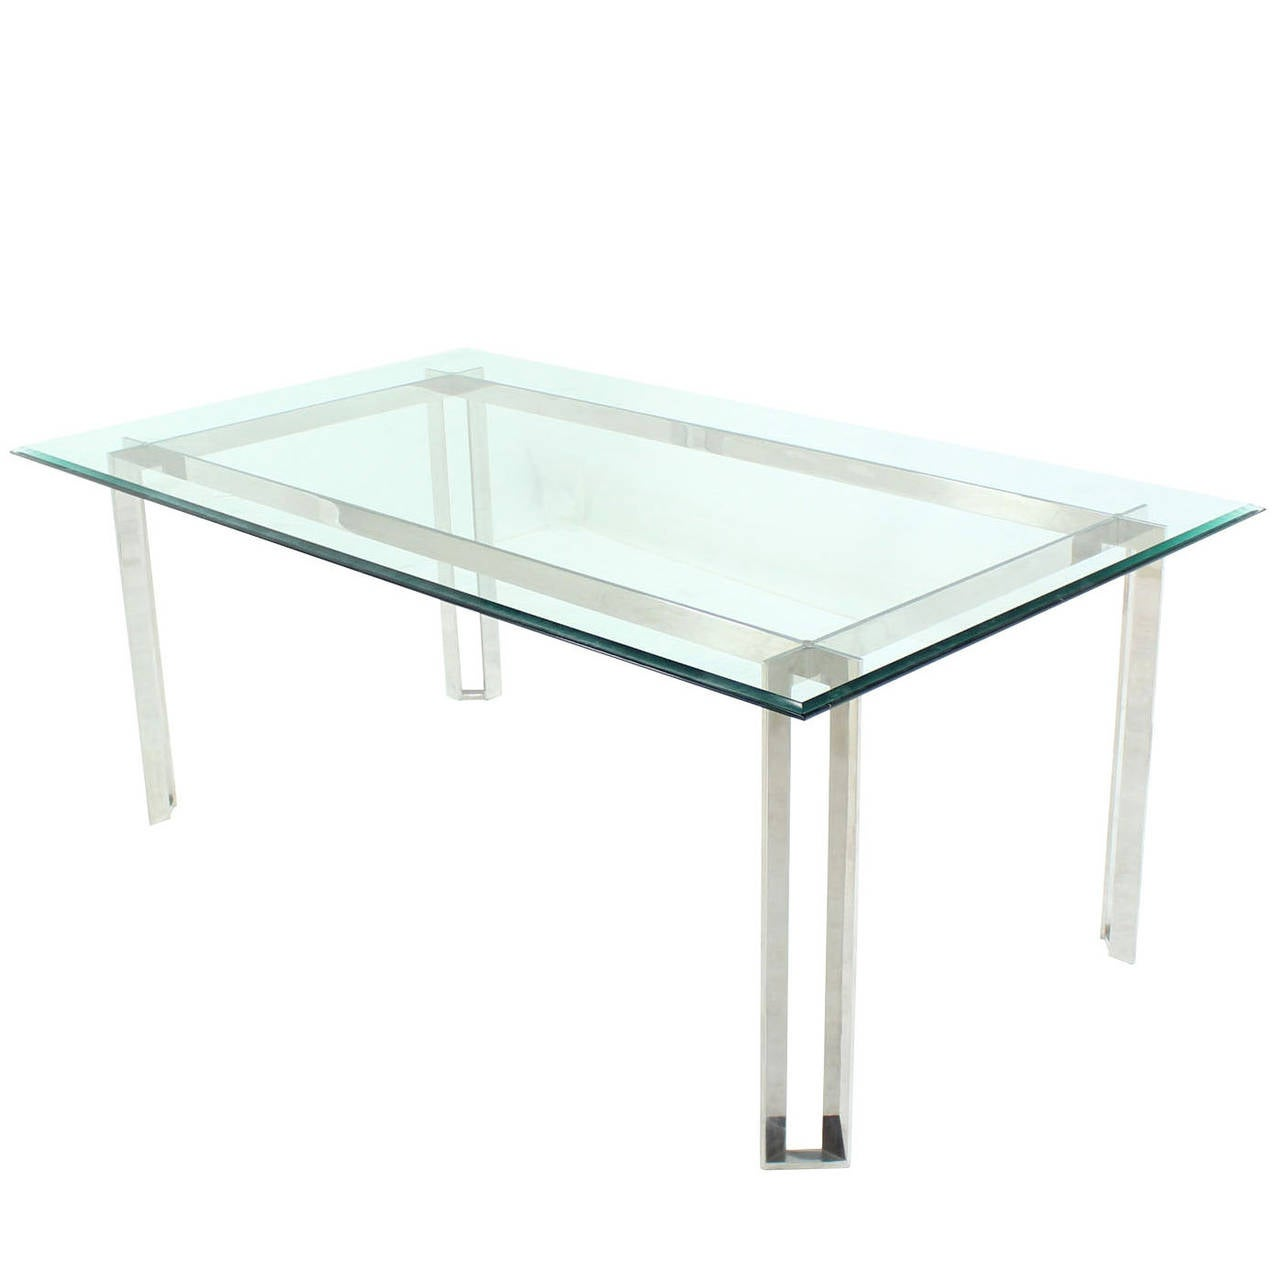 Polished Stainless Steel And Thick Glass Top Dining Room Table For Sale At 1stdibs